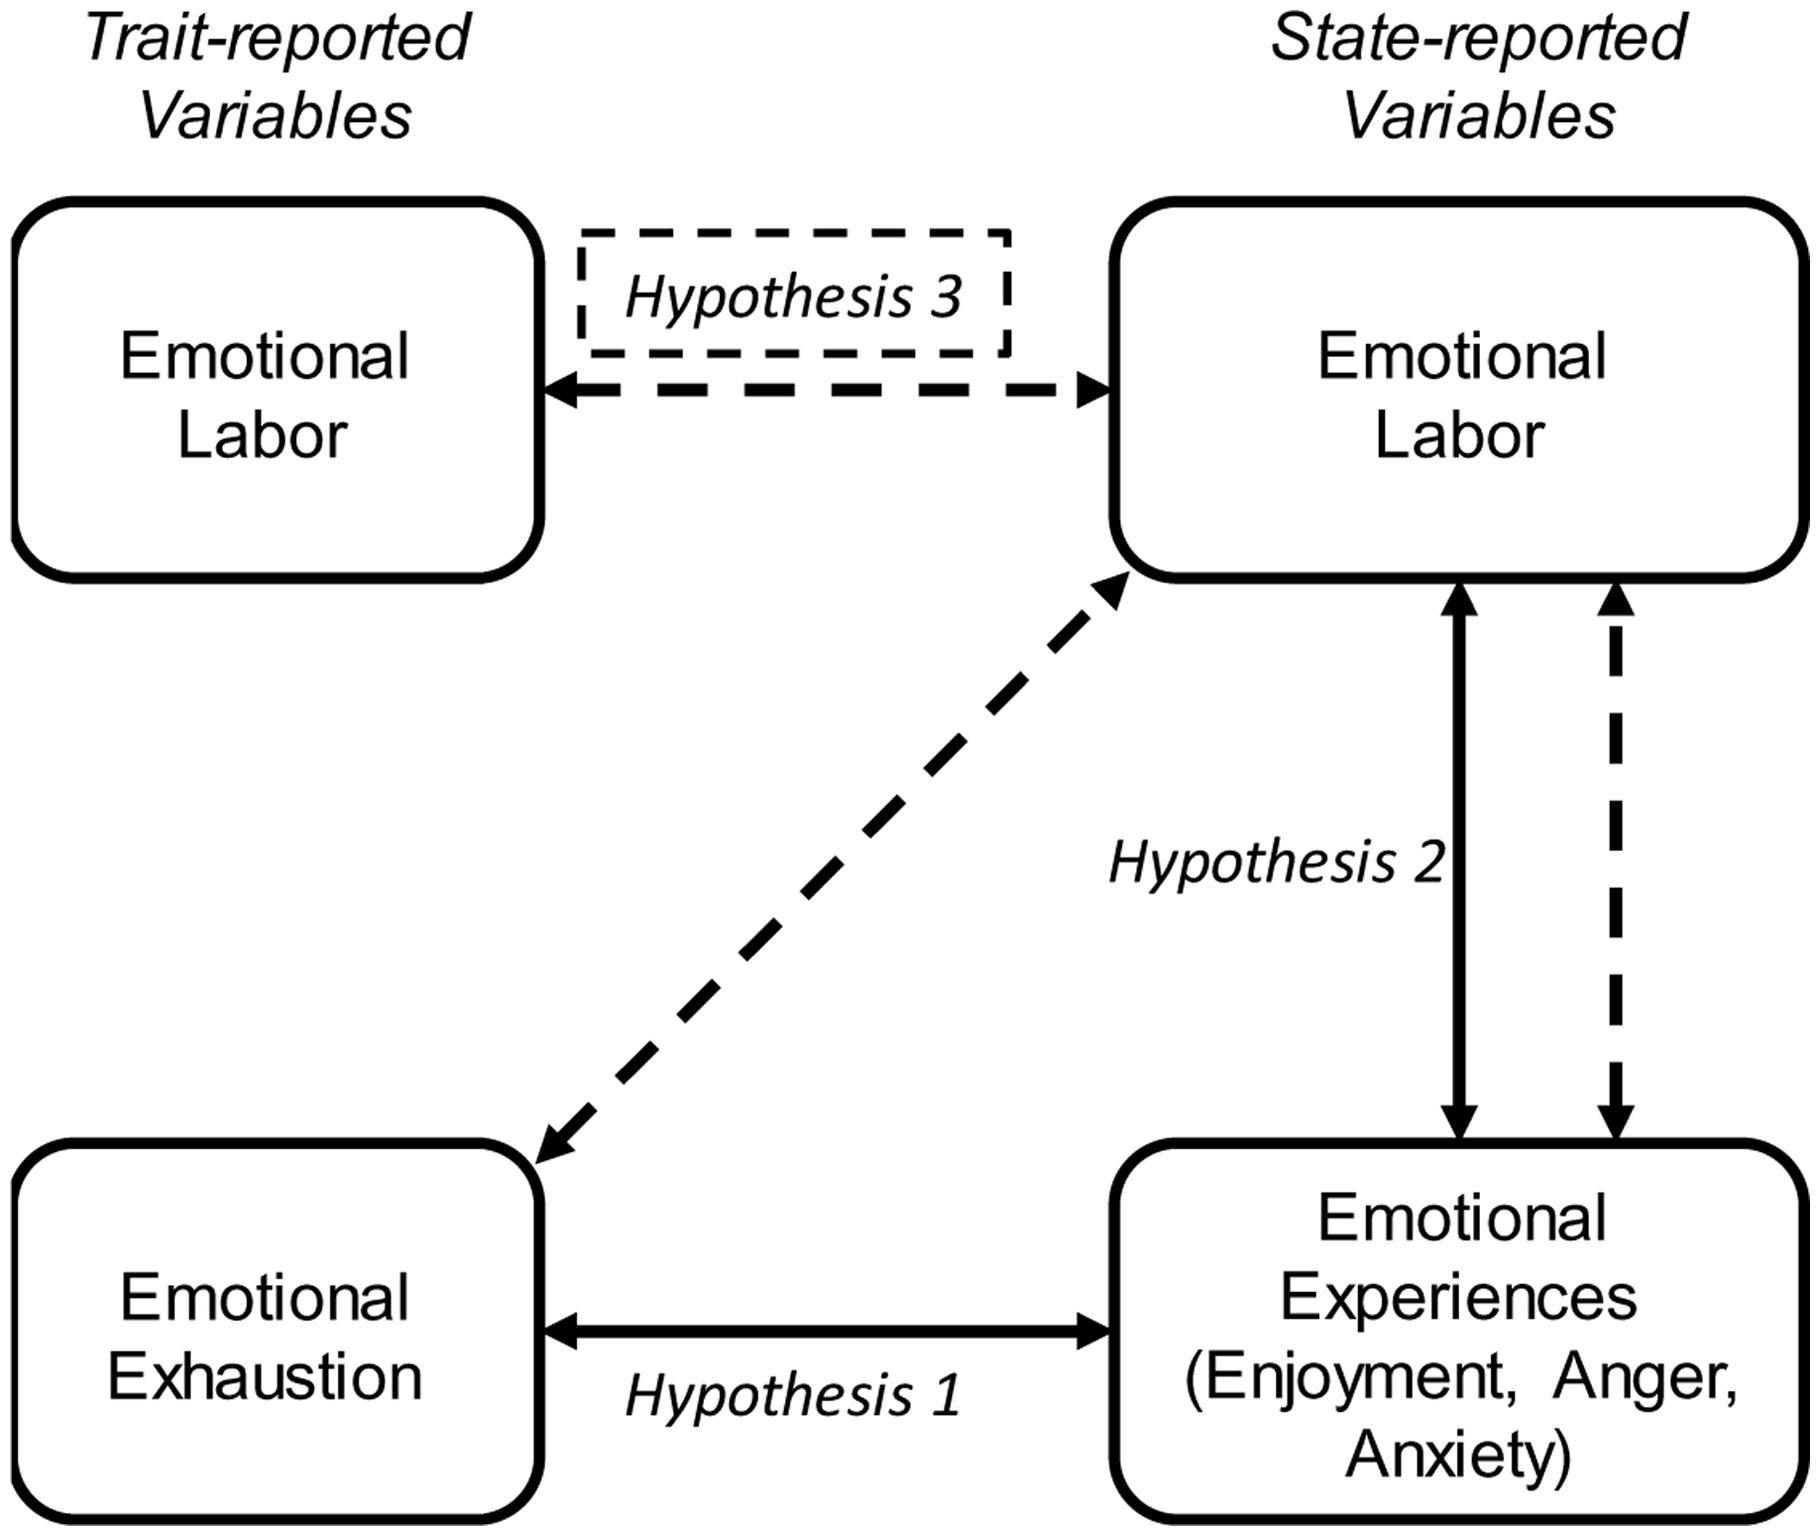 emotional labor and emotional exhaustion Emotional labor and emotional exhaustion h4: emotional intelligence will moderate the relationship between deep acting strategy of emotional labor and emotional.